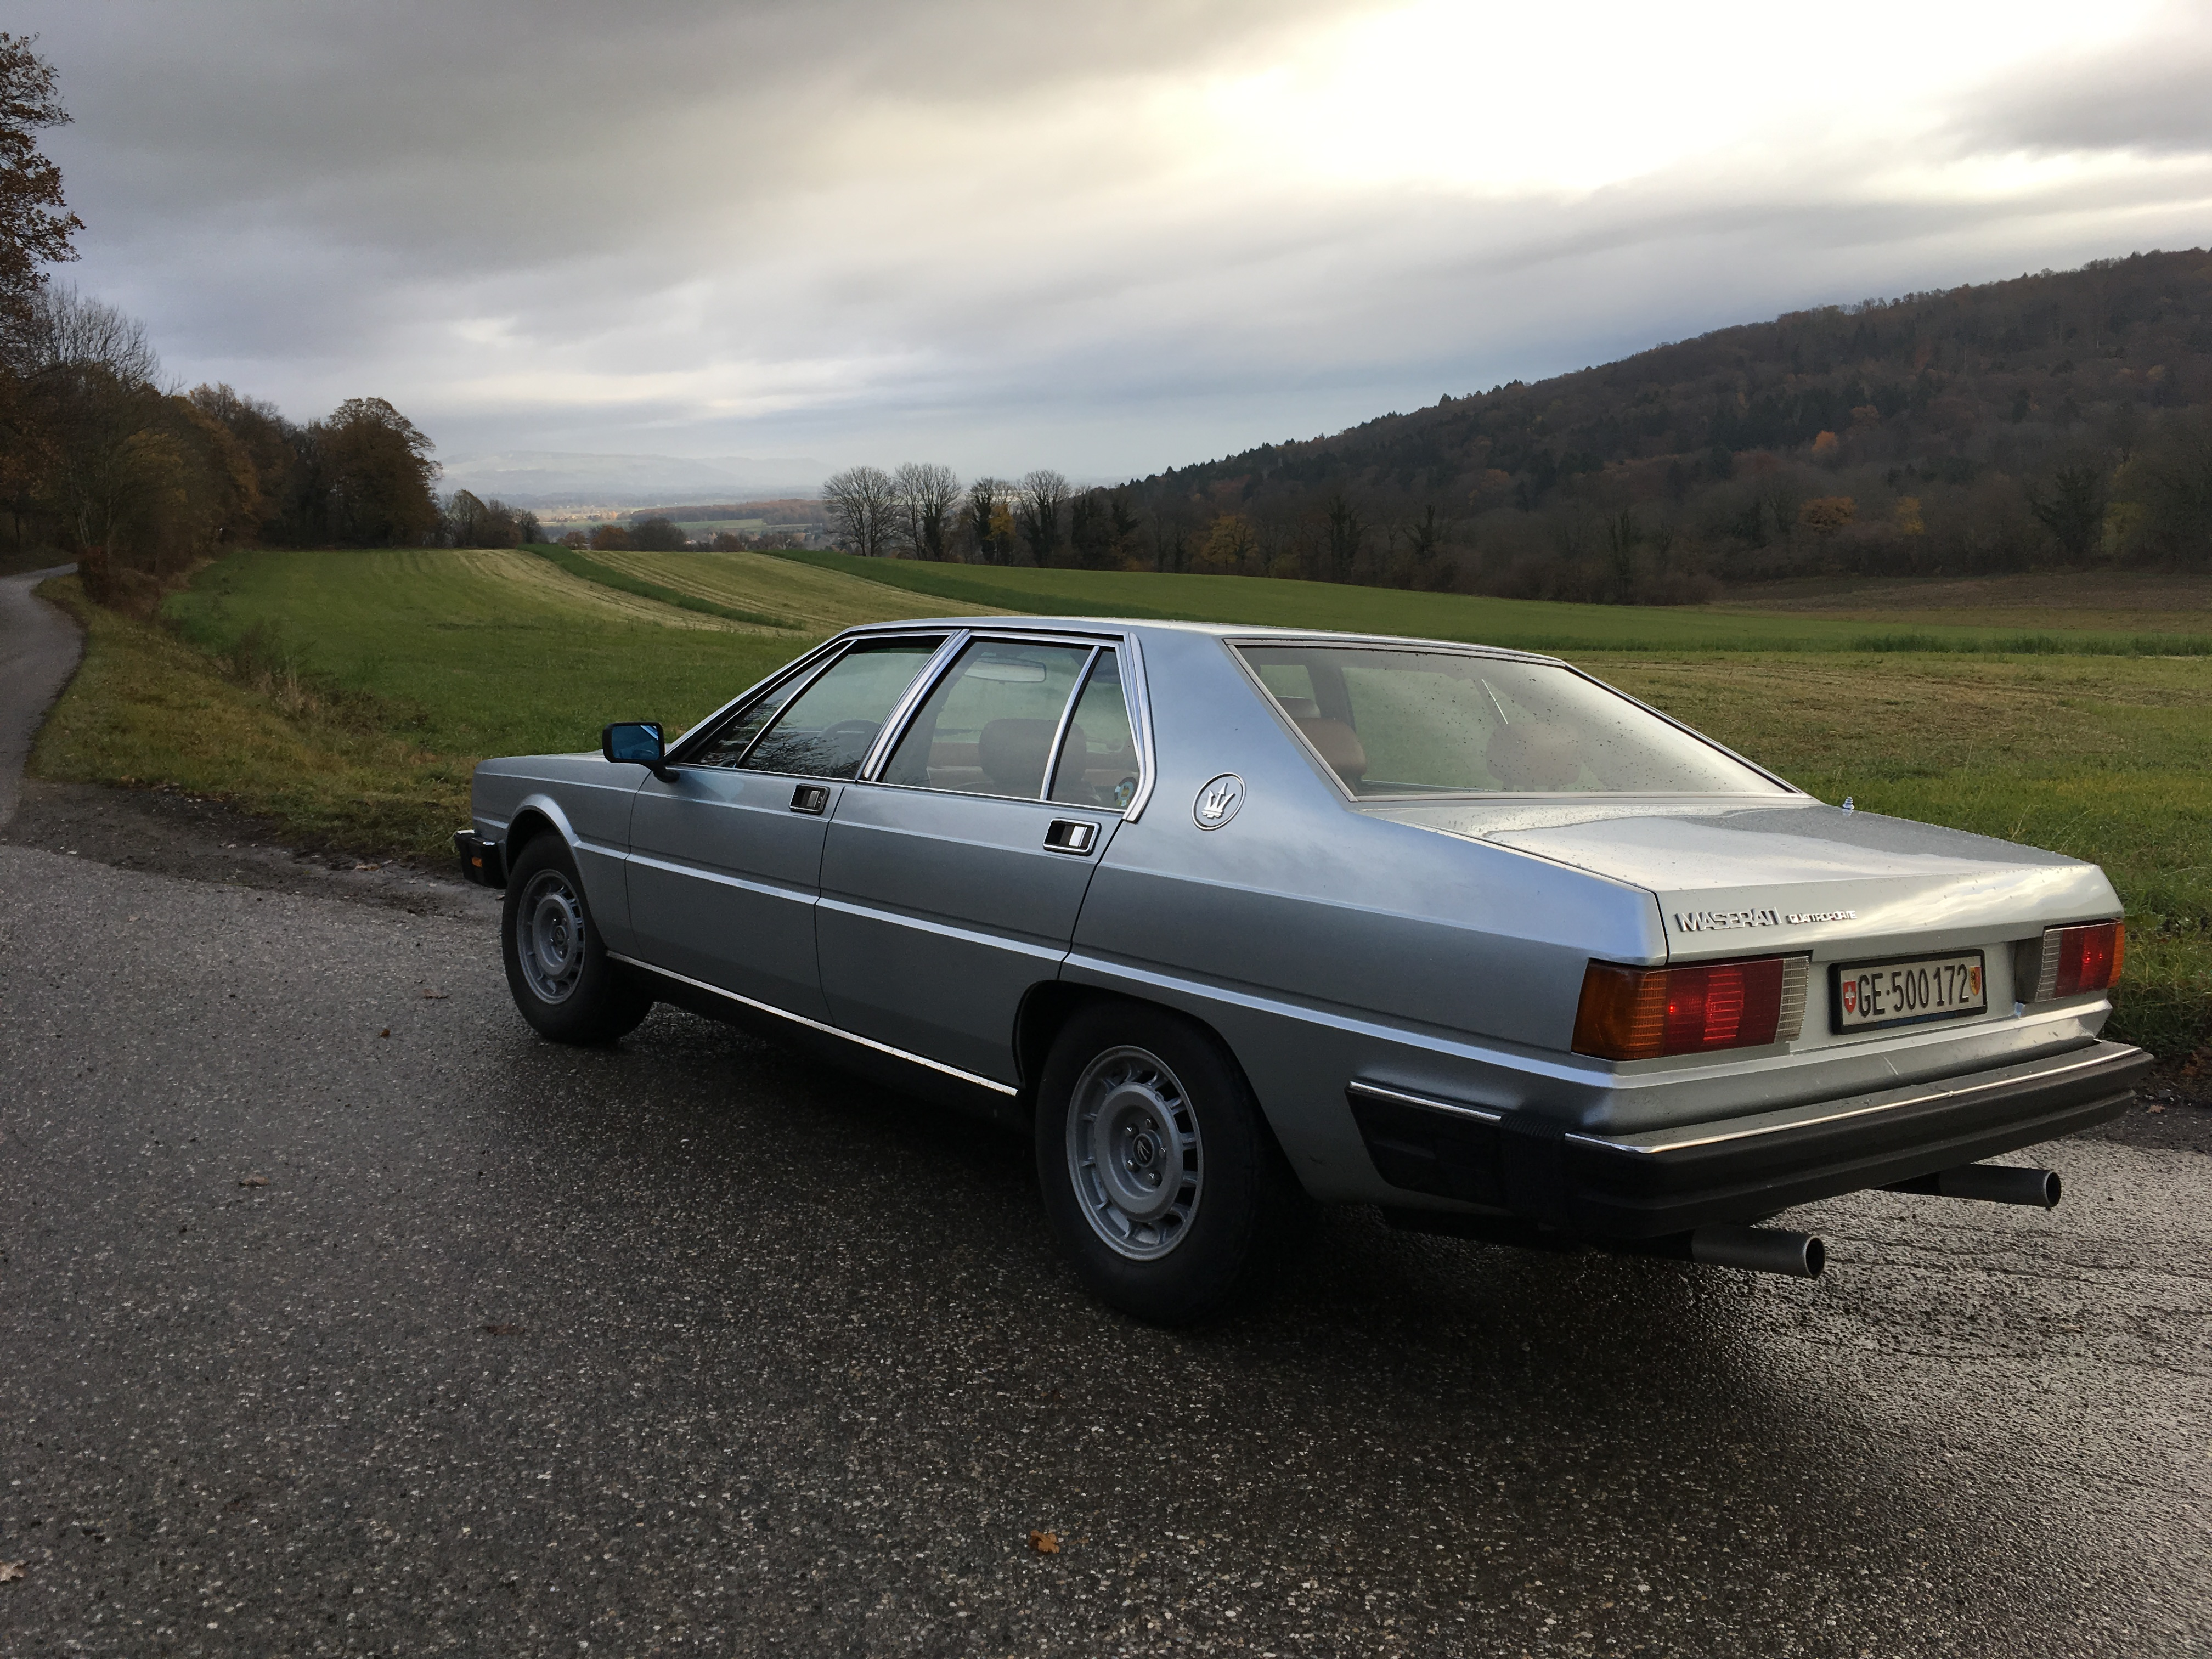 19 November: Photos from SAGA drive around Geneva